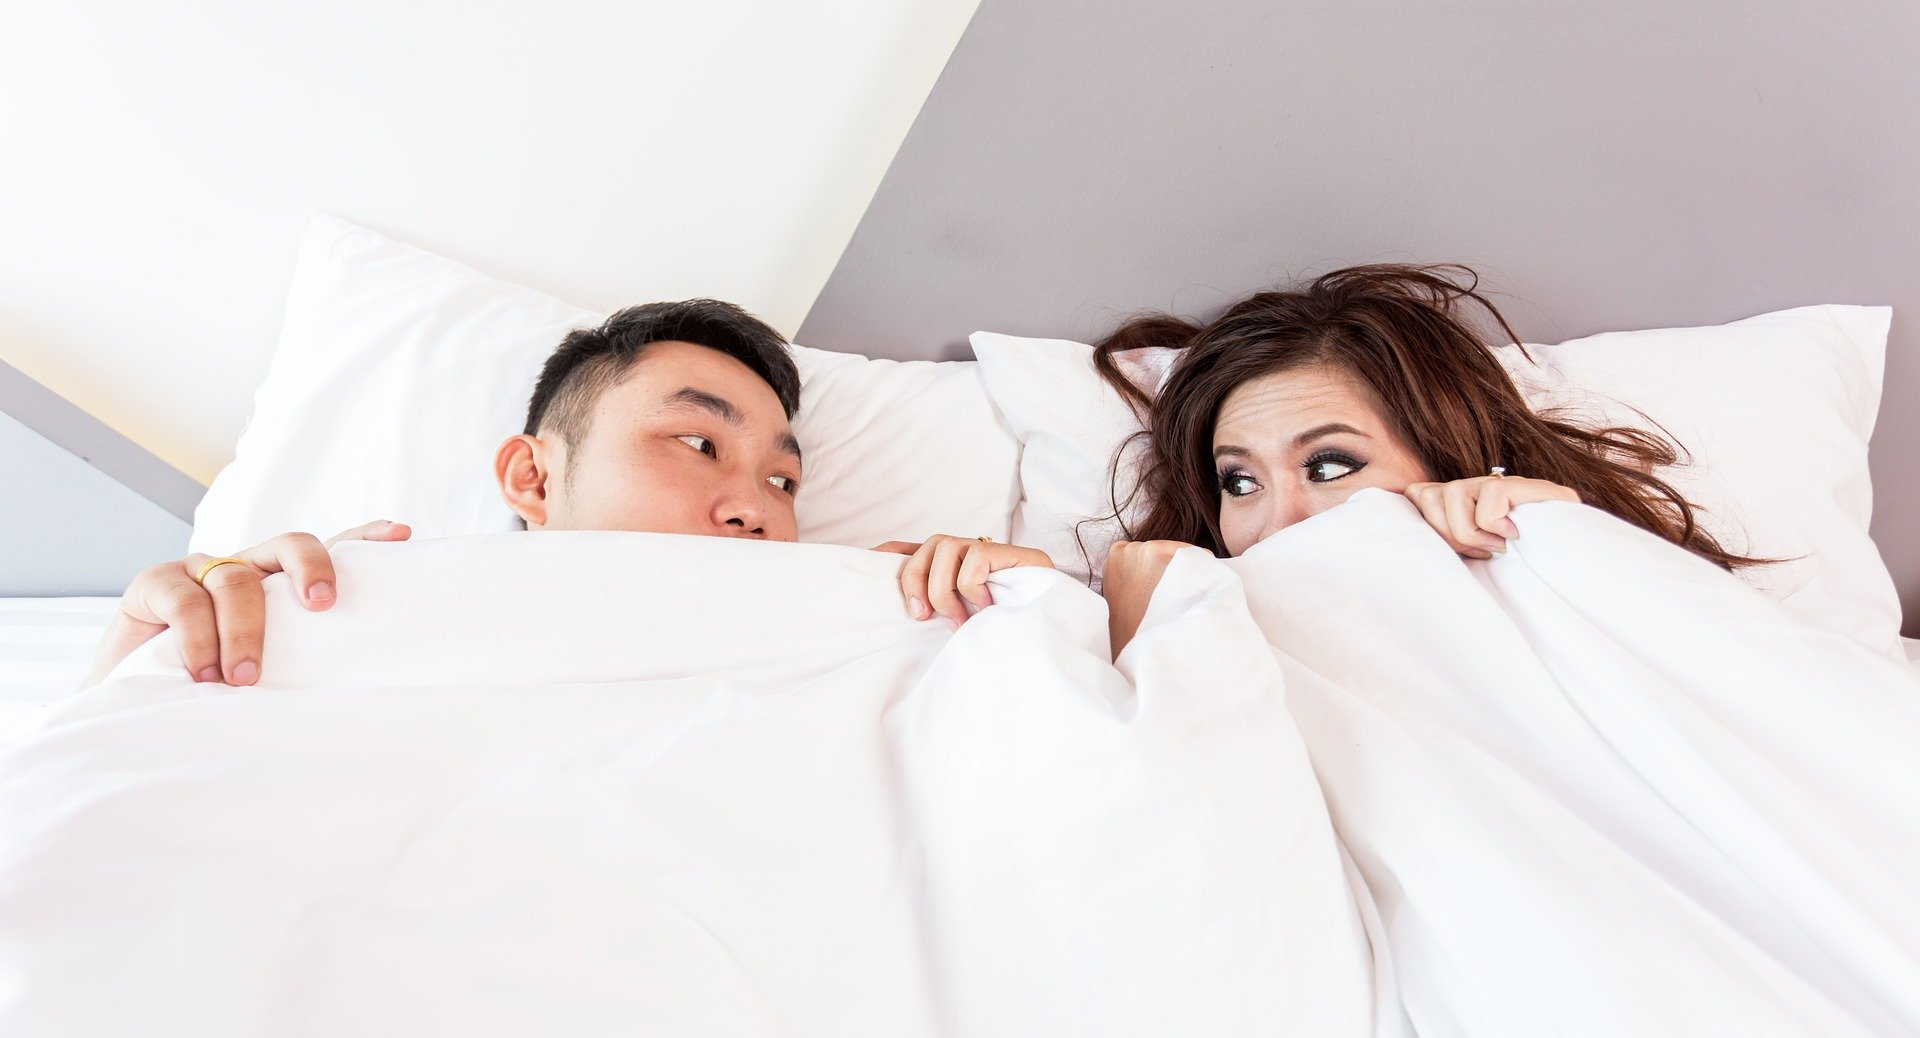 Do You Hide Personal Problems From Your Spouse?